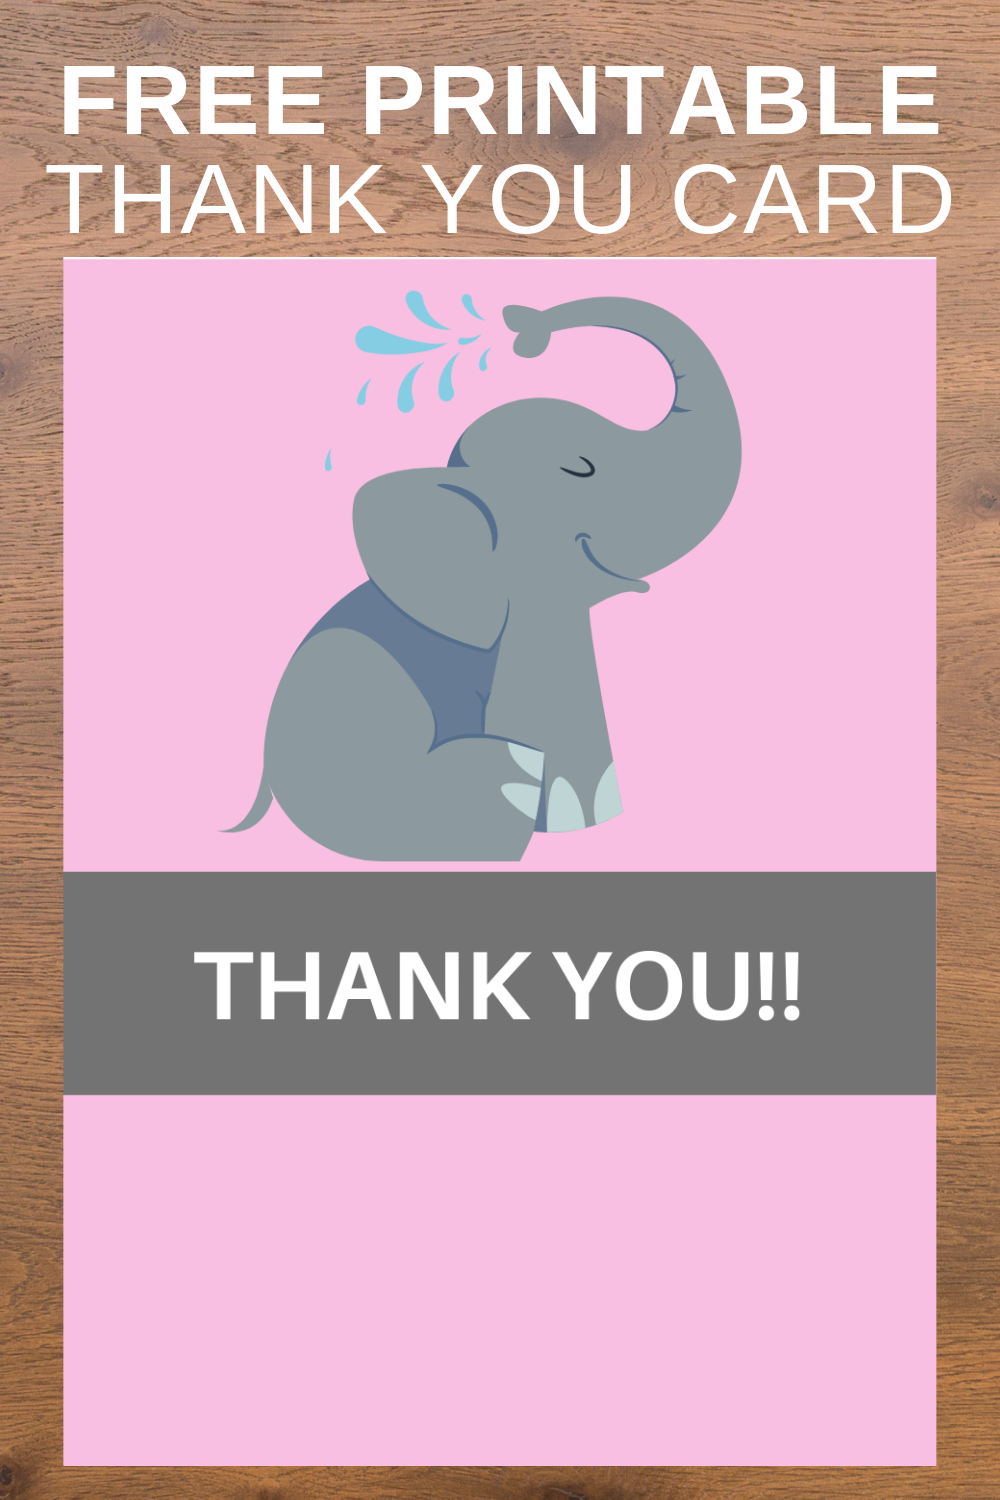 free printable elephant thank you card for toddlers birthday party